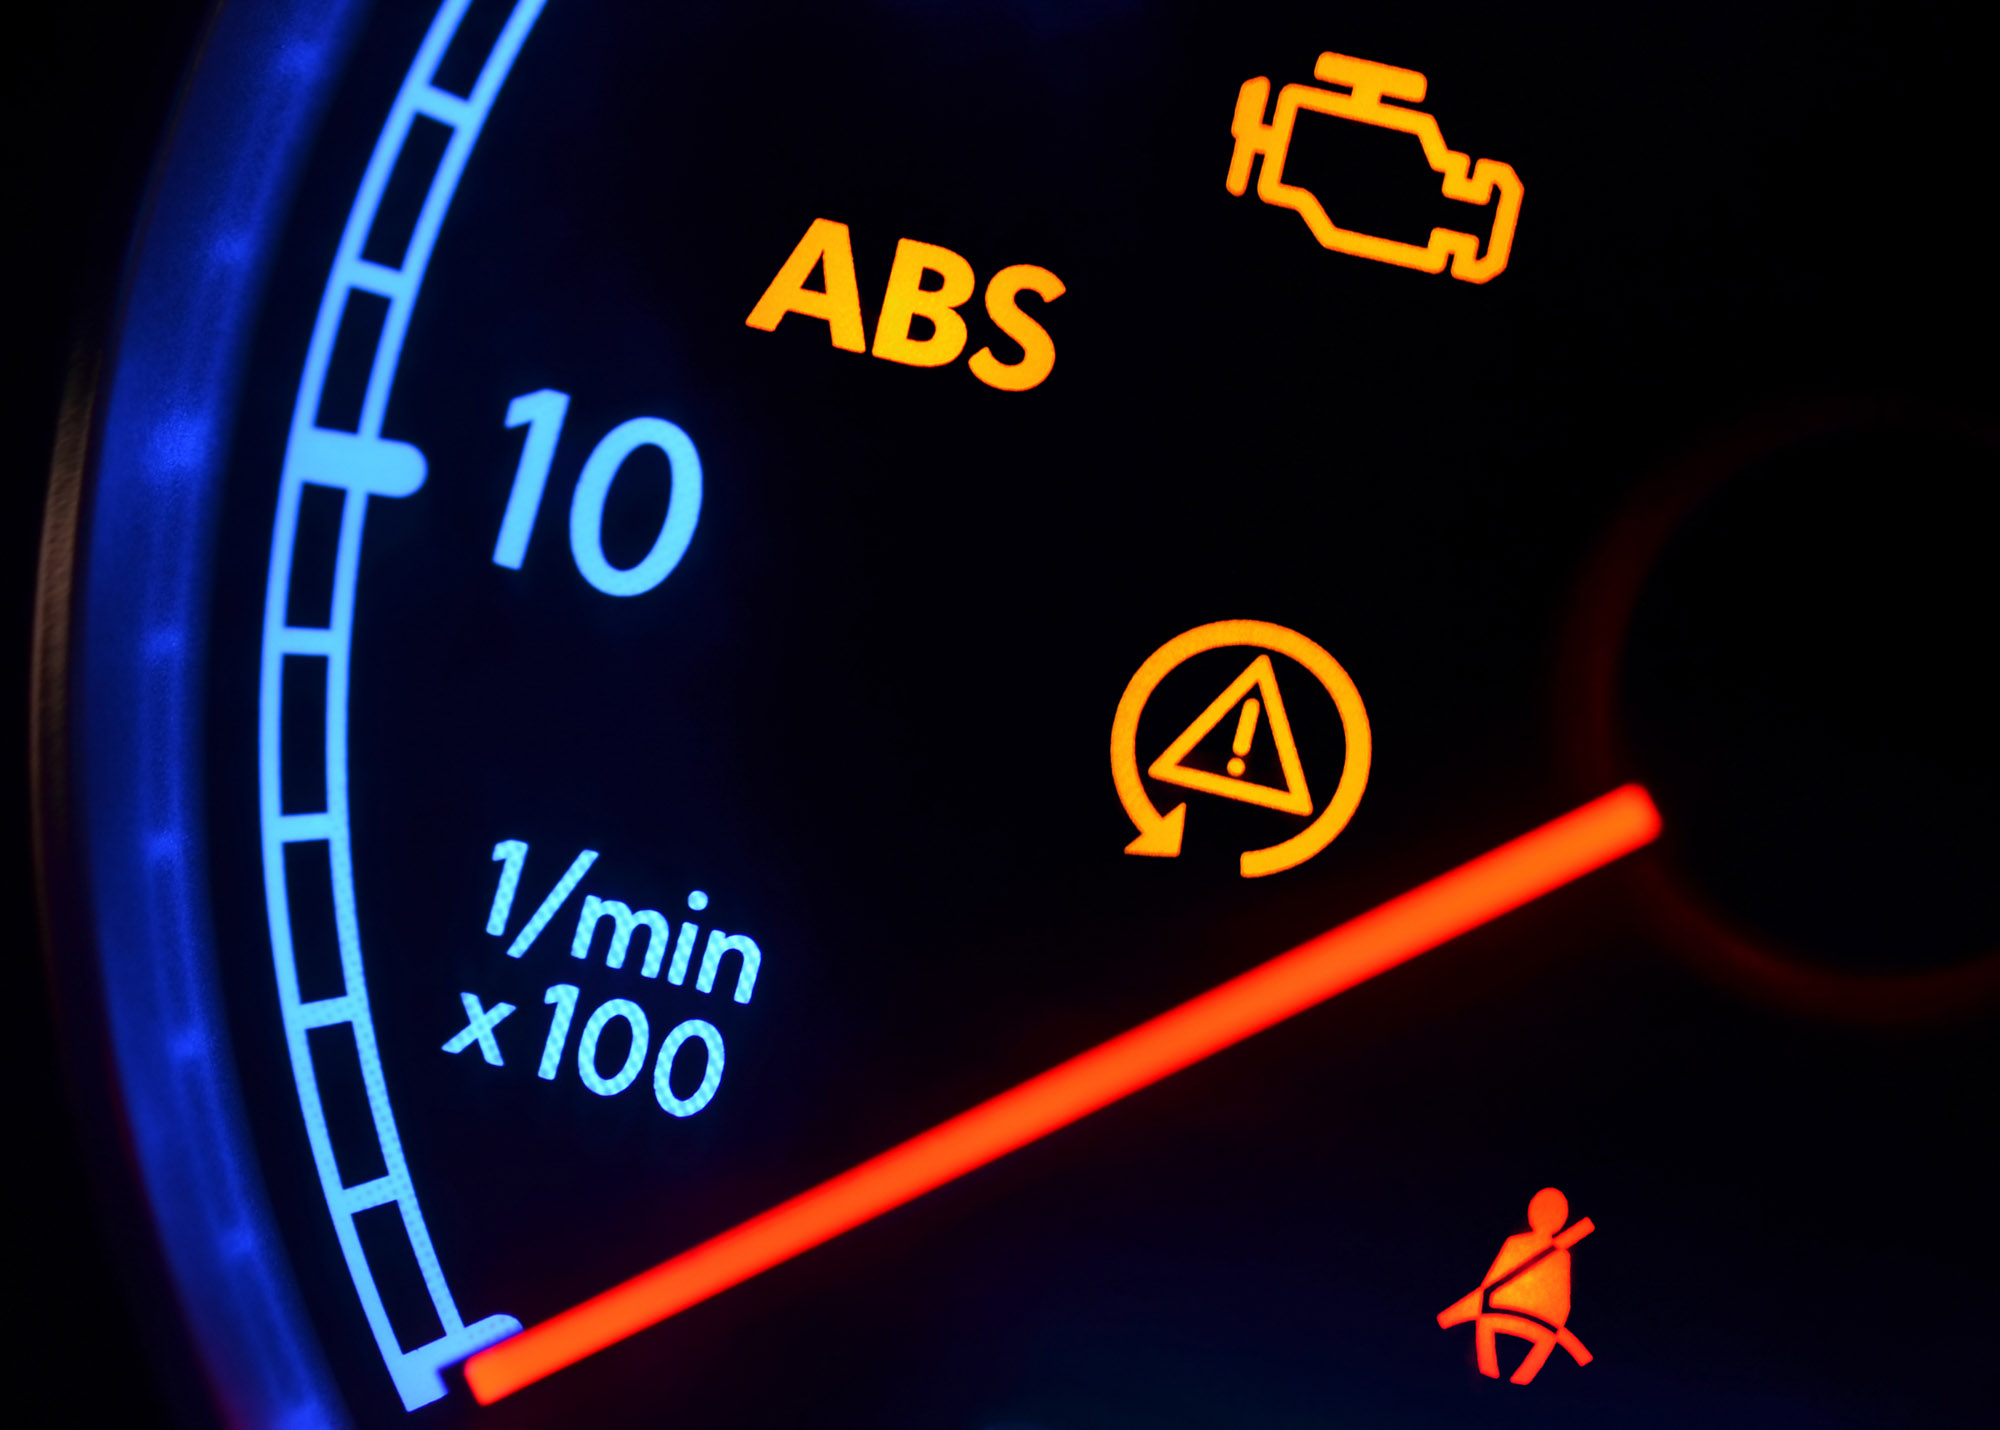 Are your 401(K) dashboard lights flashing?